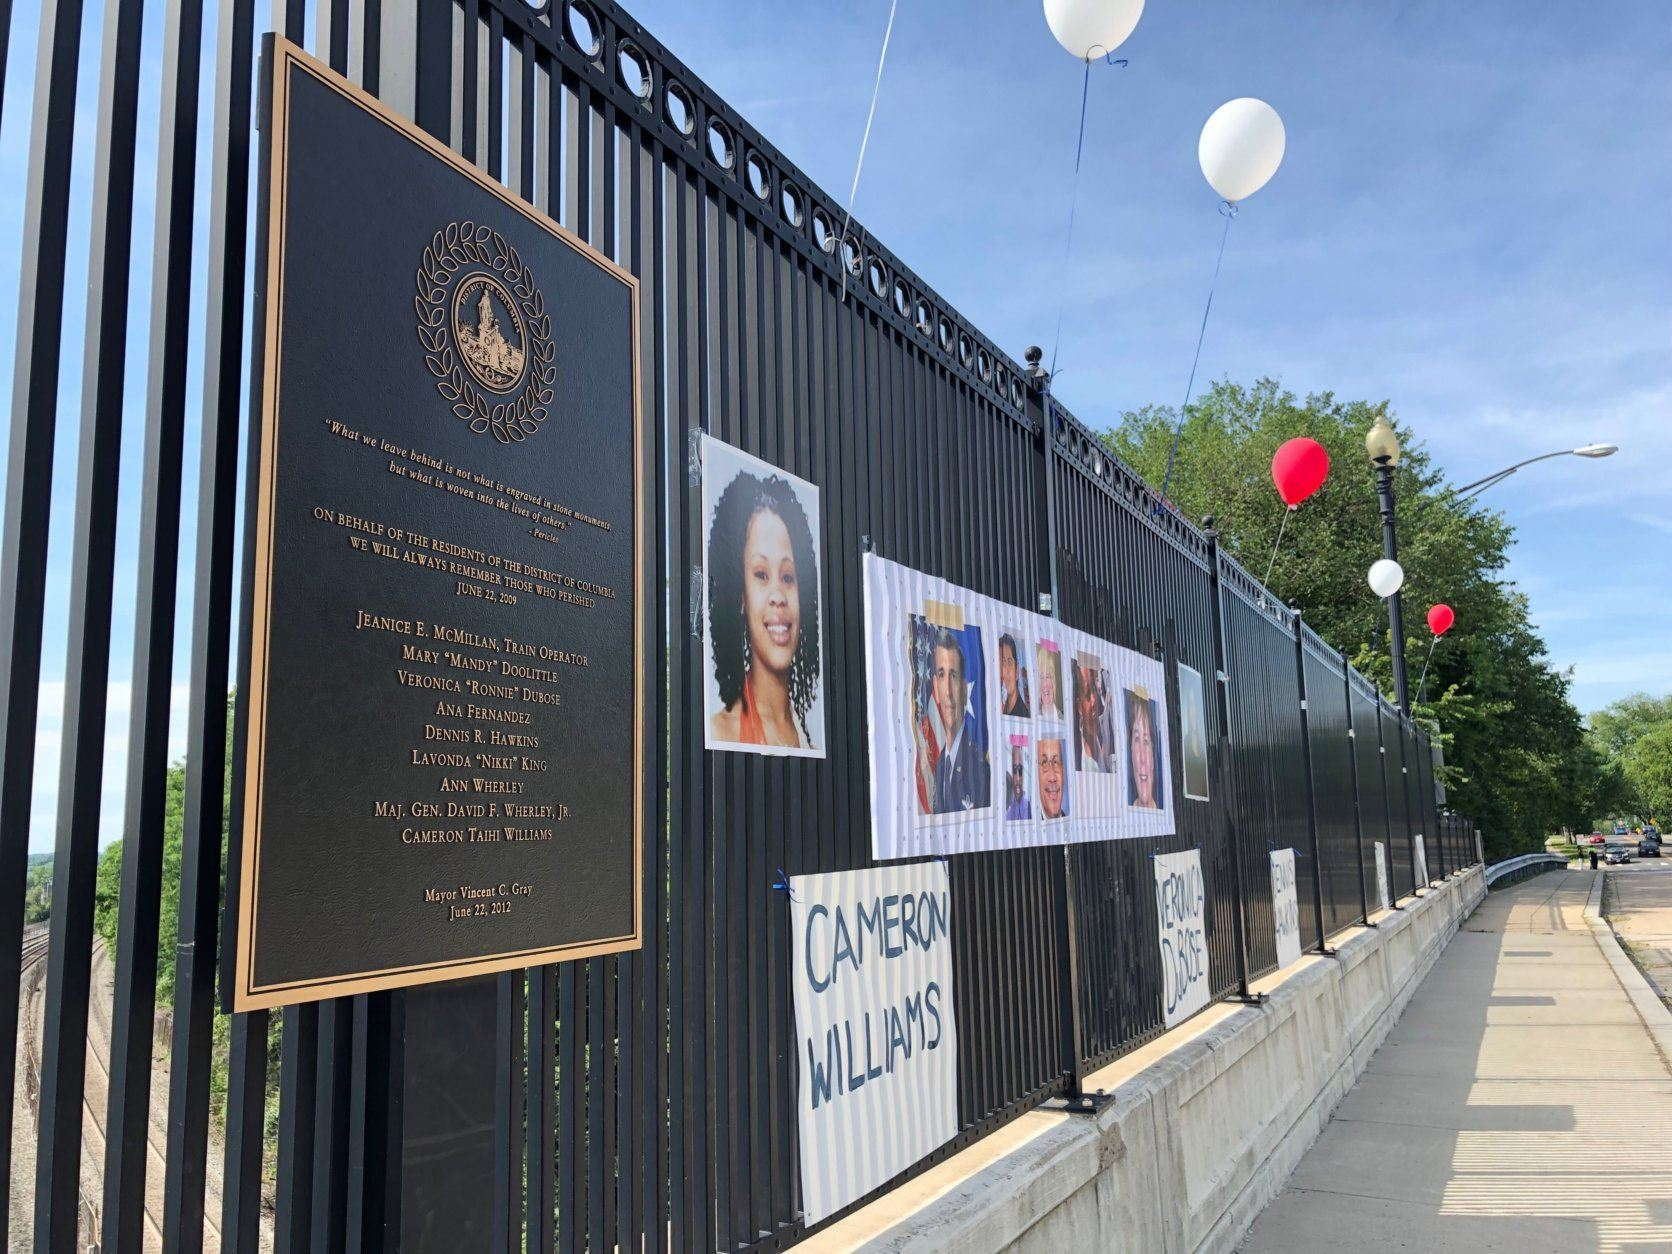 On the New Hampshire Avenue bridge over the tracks where the 2009 Metro crash happened, the names of those killed were posted along with photos. Red and white balloons were tied to the fence. (WTOP/Kate Ryan)